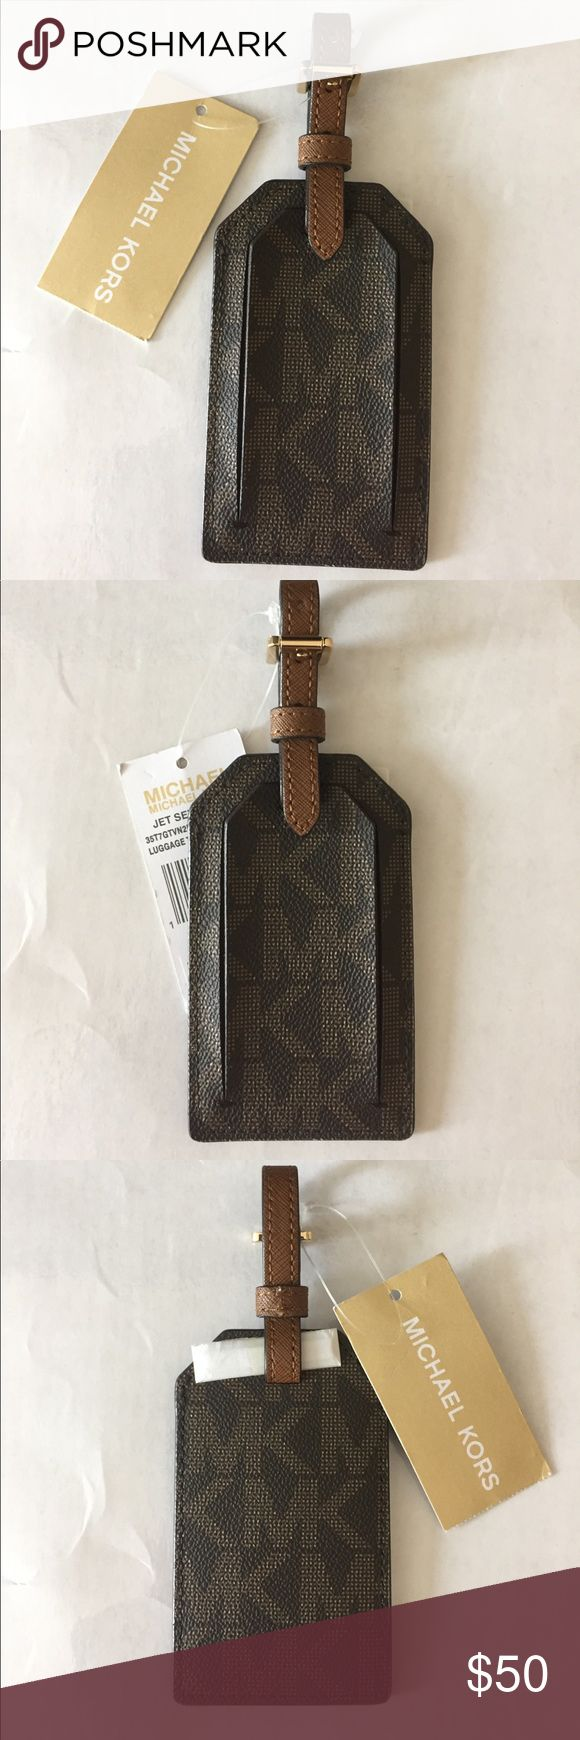 New w/tags MICHAEL KORS JET SET LUGGAGE TAG BROWN NEW WITH TAG MICHAEL KORS JET SET LUGGAGE TAG Brown Michael KORS logo all over tag. Info stays closed in w/ leather strap. VERY WELL MADE! Michael Kors Accessories Key & Card Holders